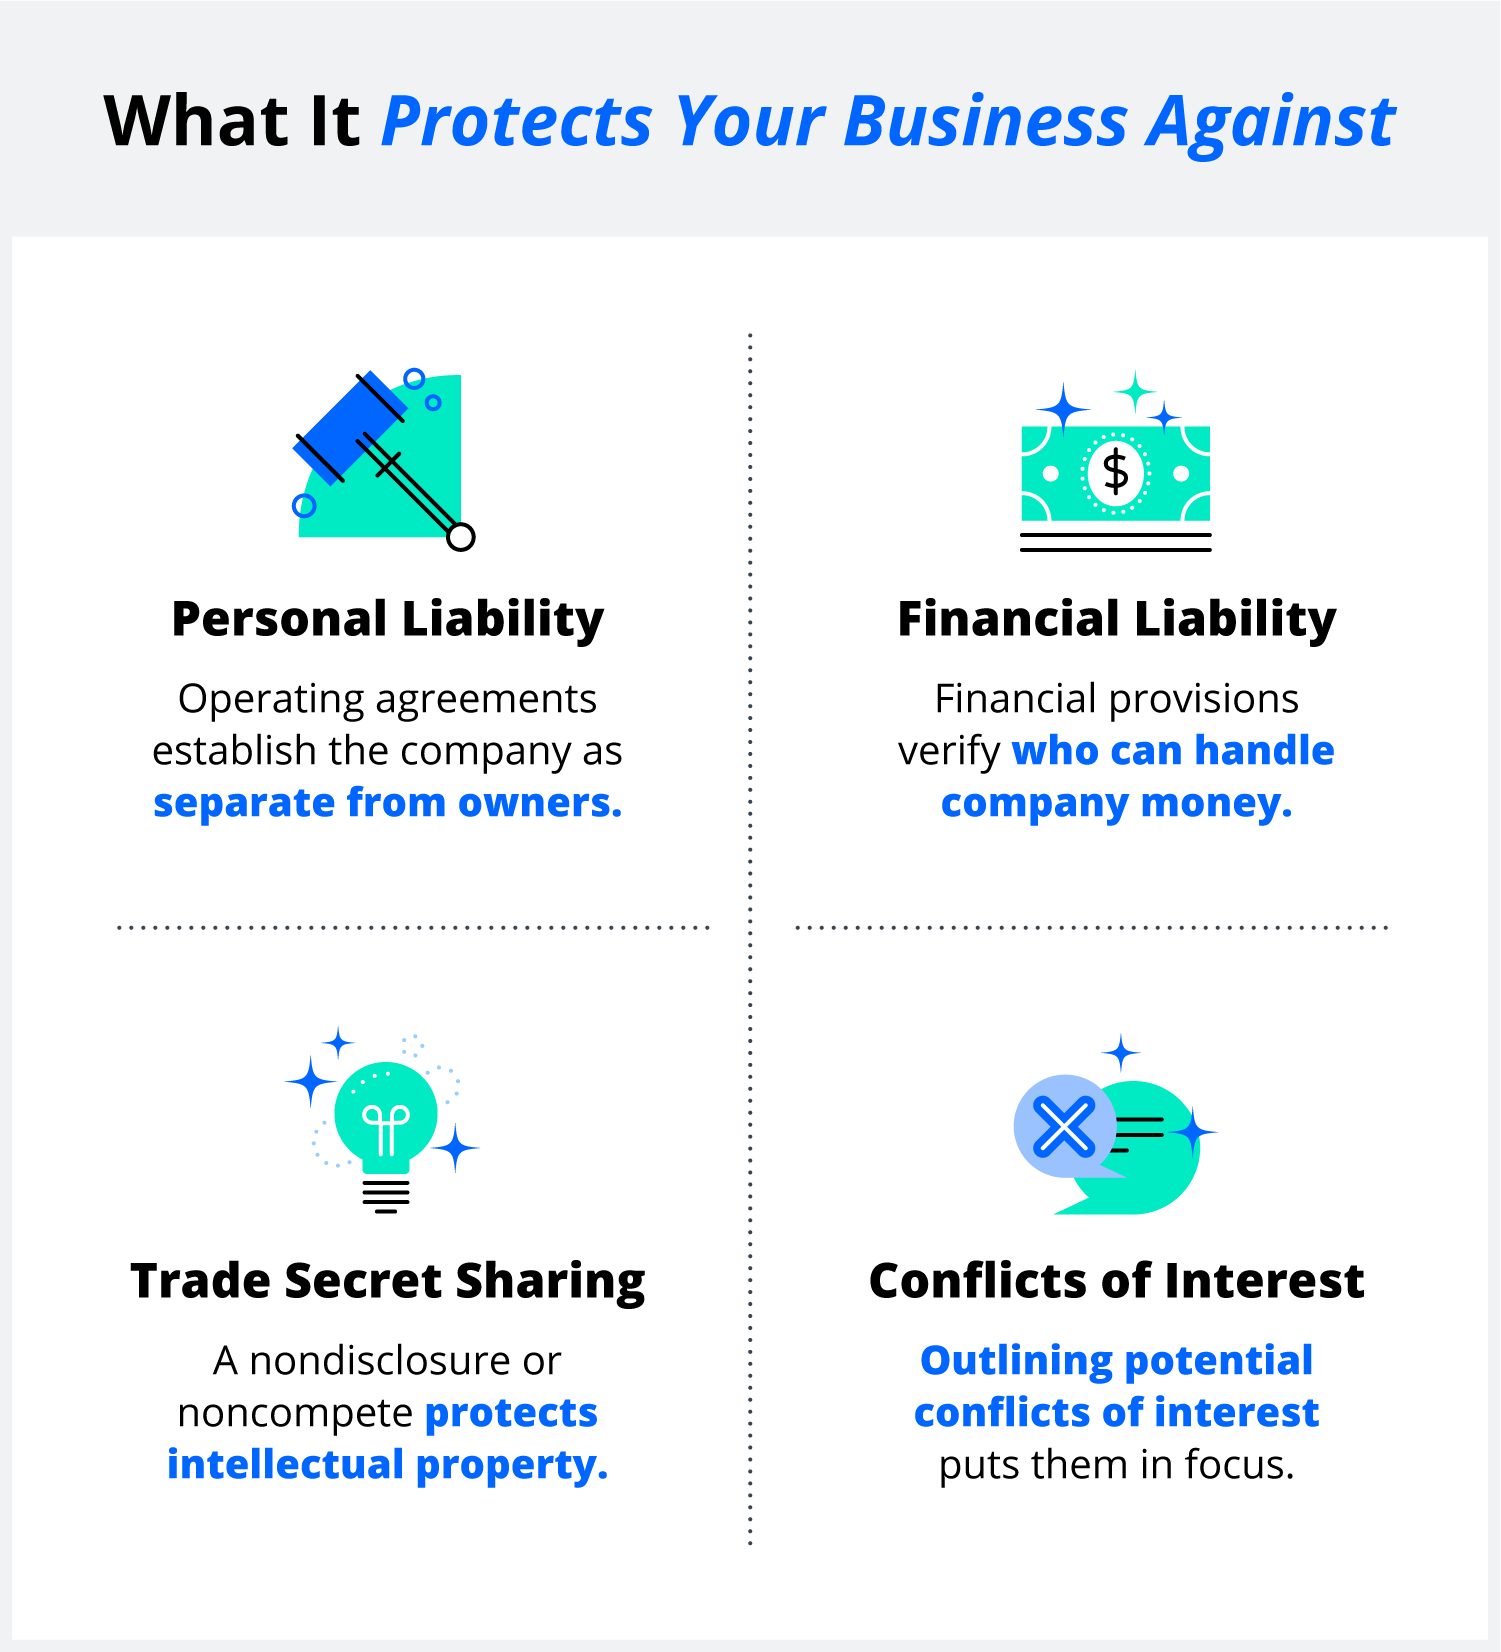 How an operating agreement protects your business